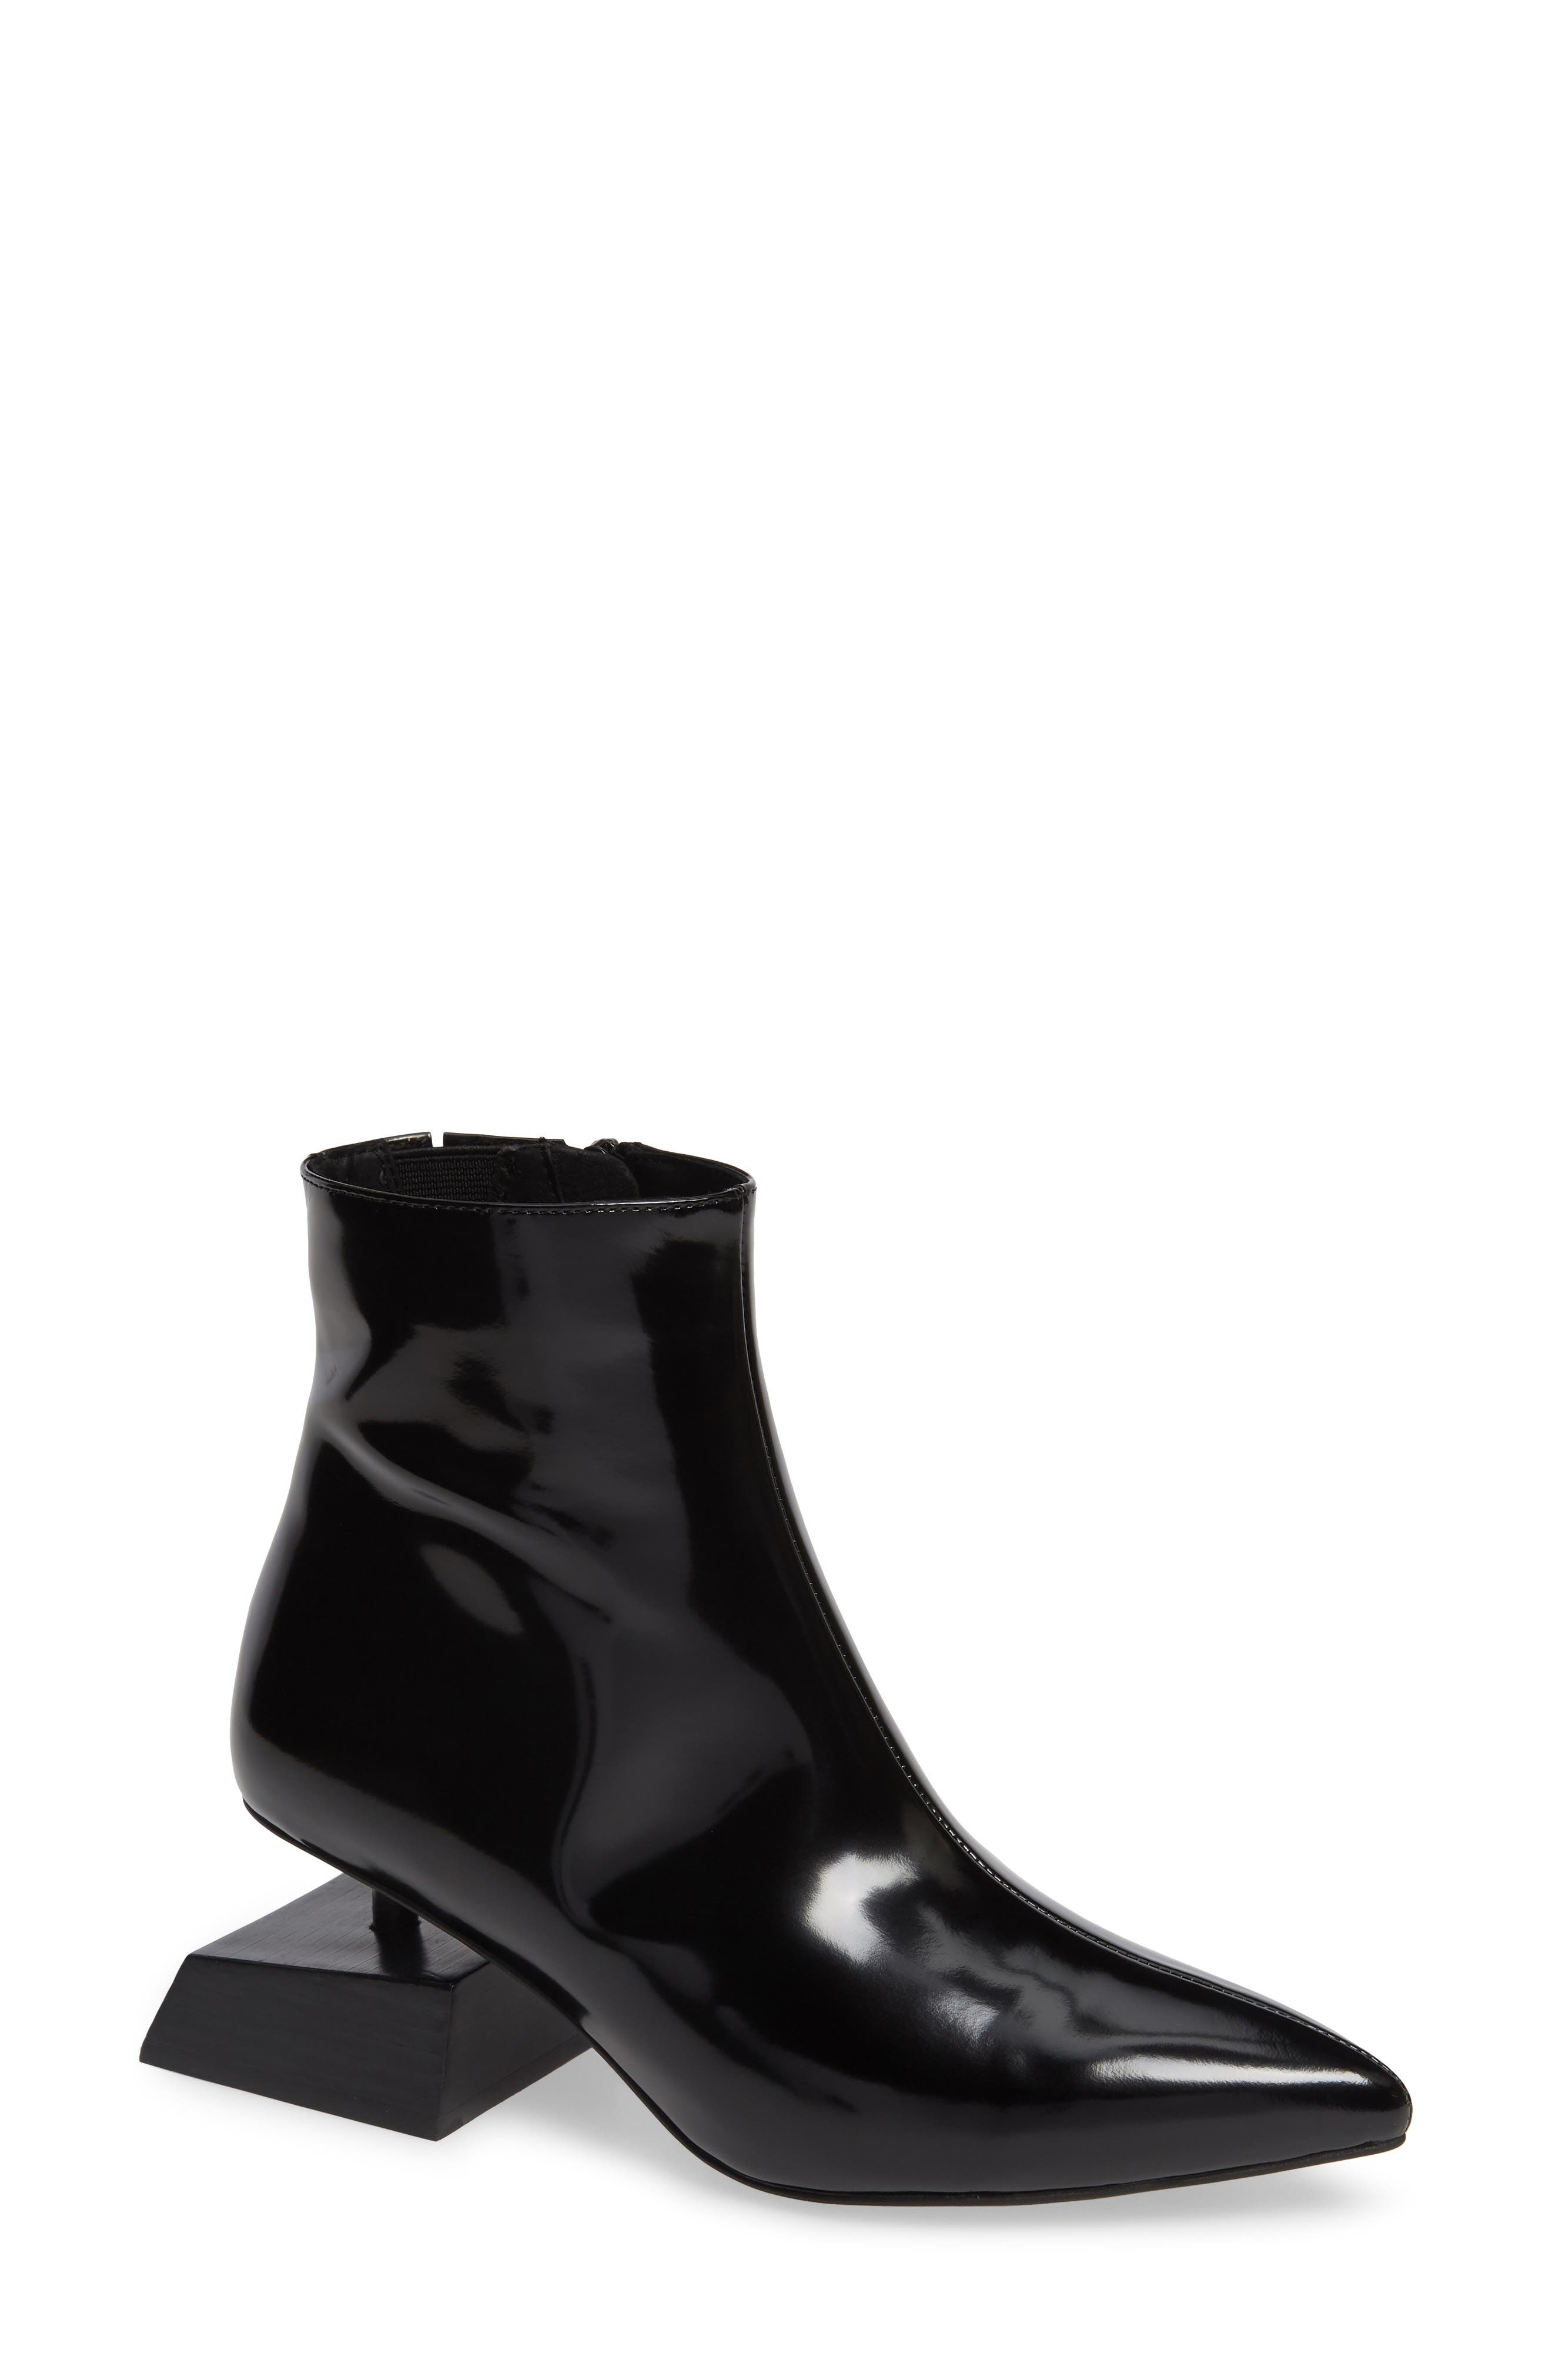 JEFFREY CAMPBELL, Anatomic Boot, Main thumbnail 1, color, BLACK LEATHER